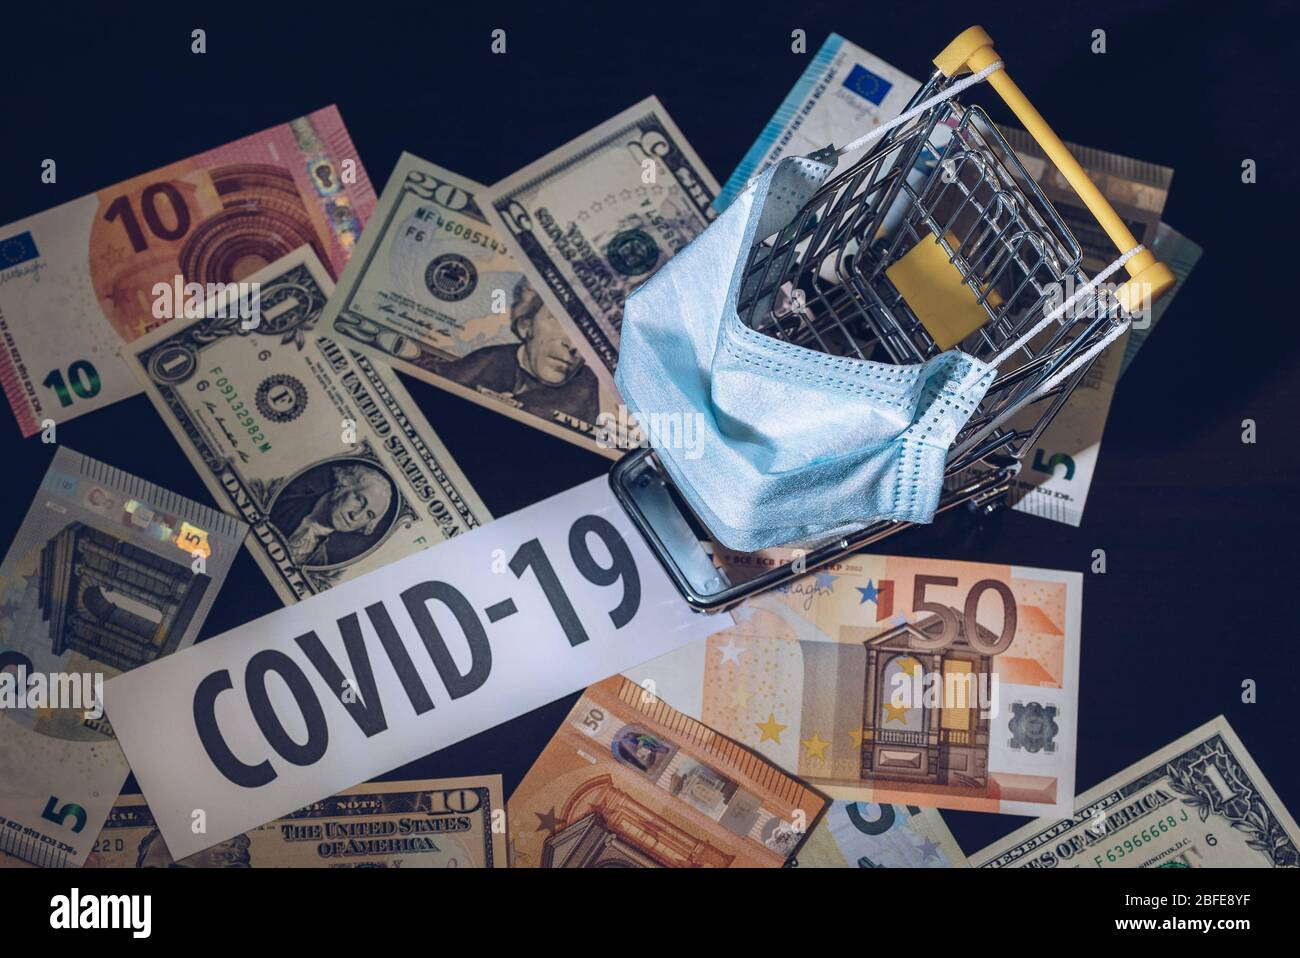 The impact of coronavirus on the economy. Economic and financial crisis. Drop in consumption due to the COVID-19 epidemic. Stock Photo